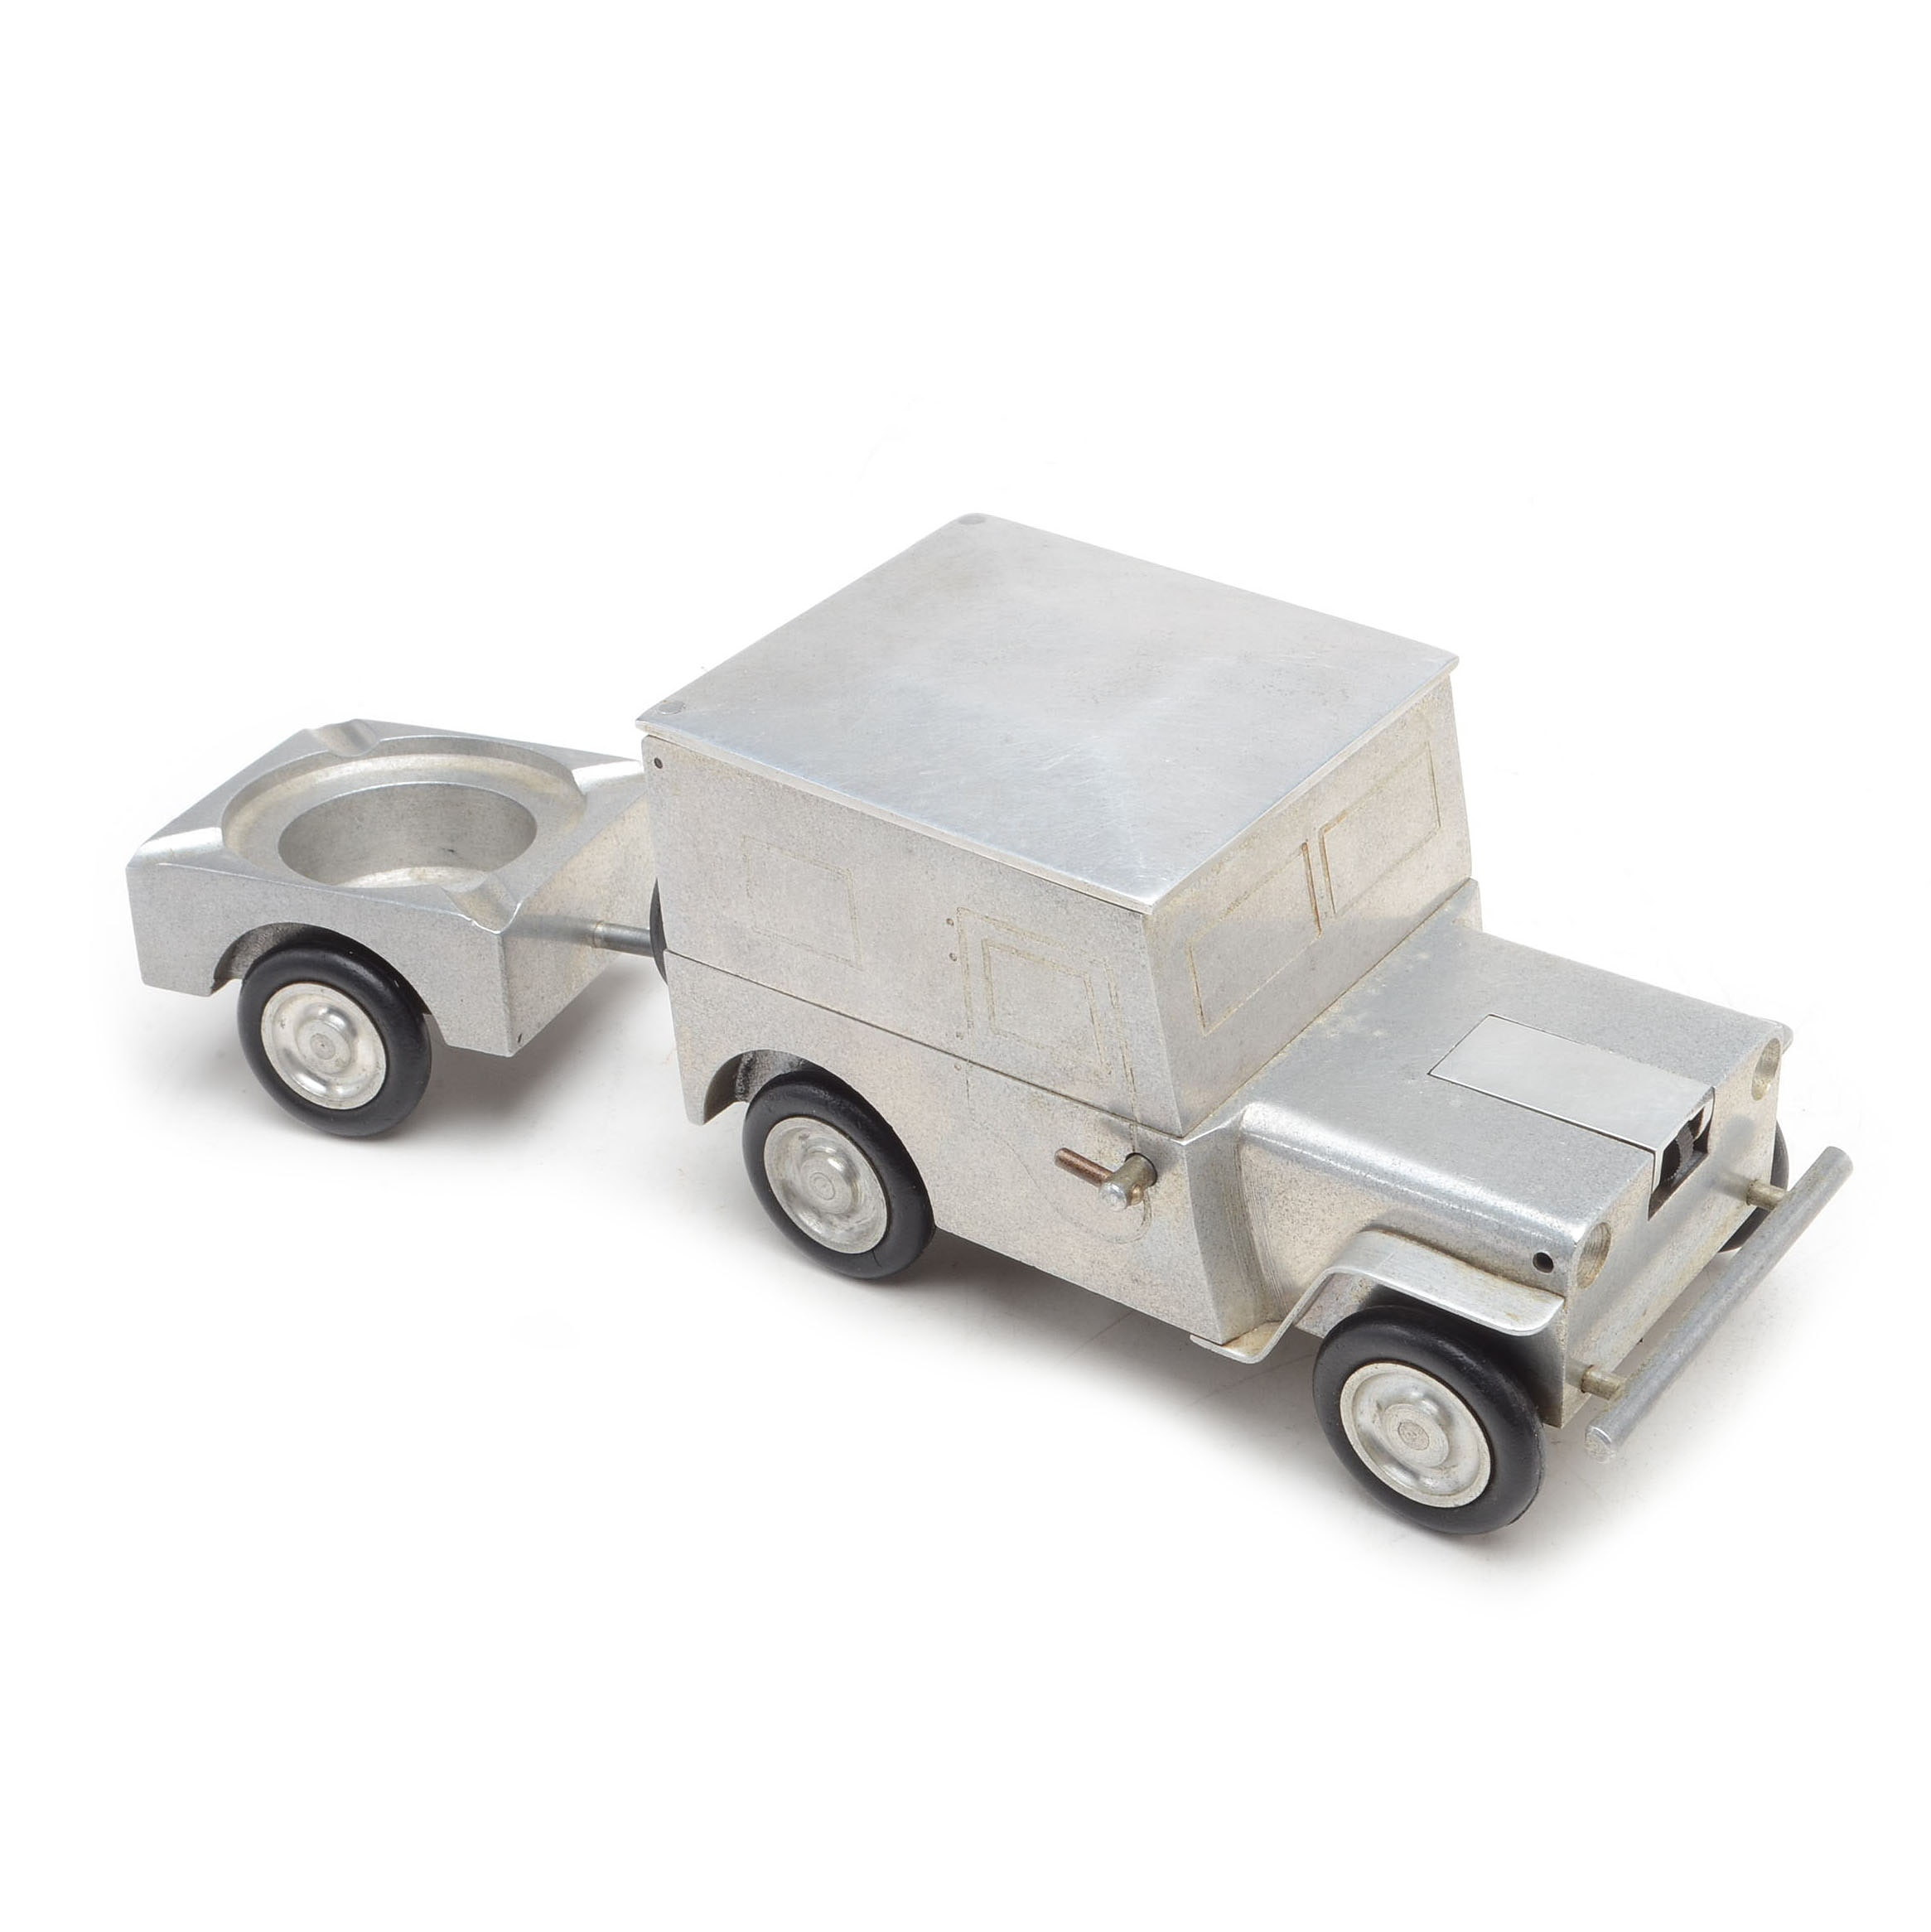 Vintage Aluminum Jeep Lighter with Ashtray Trailer